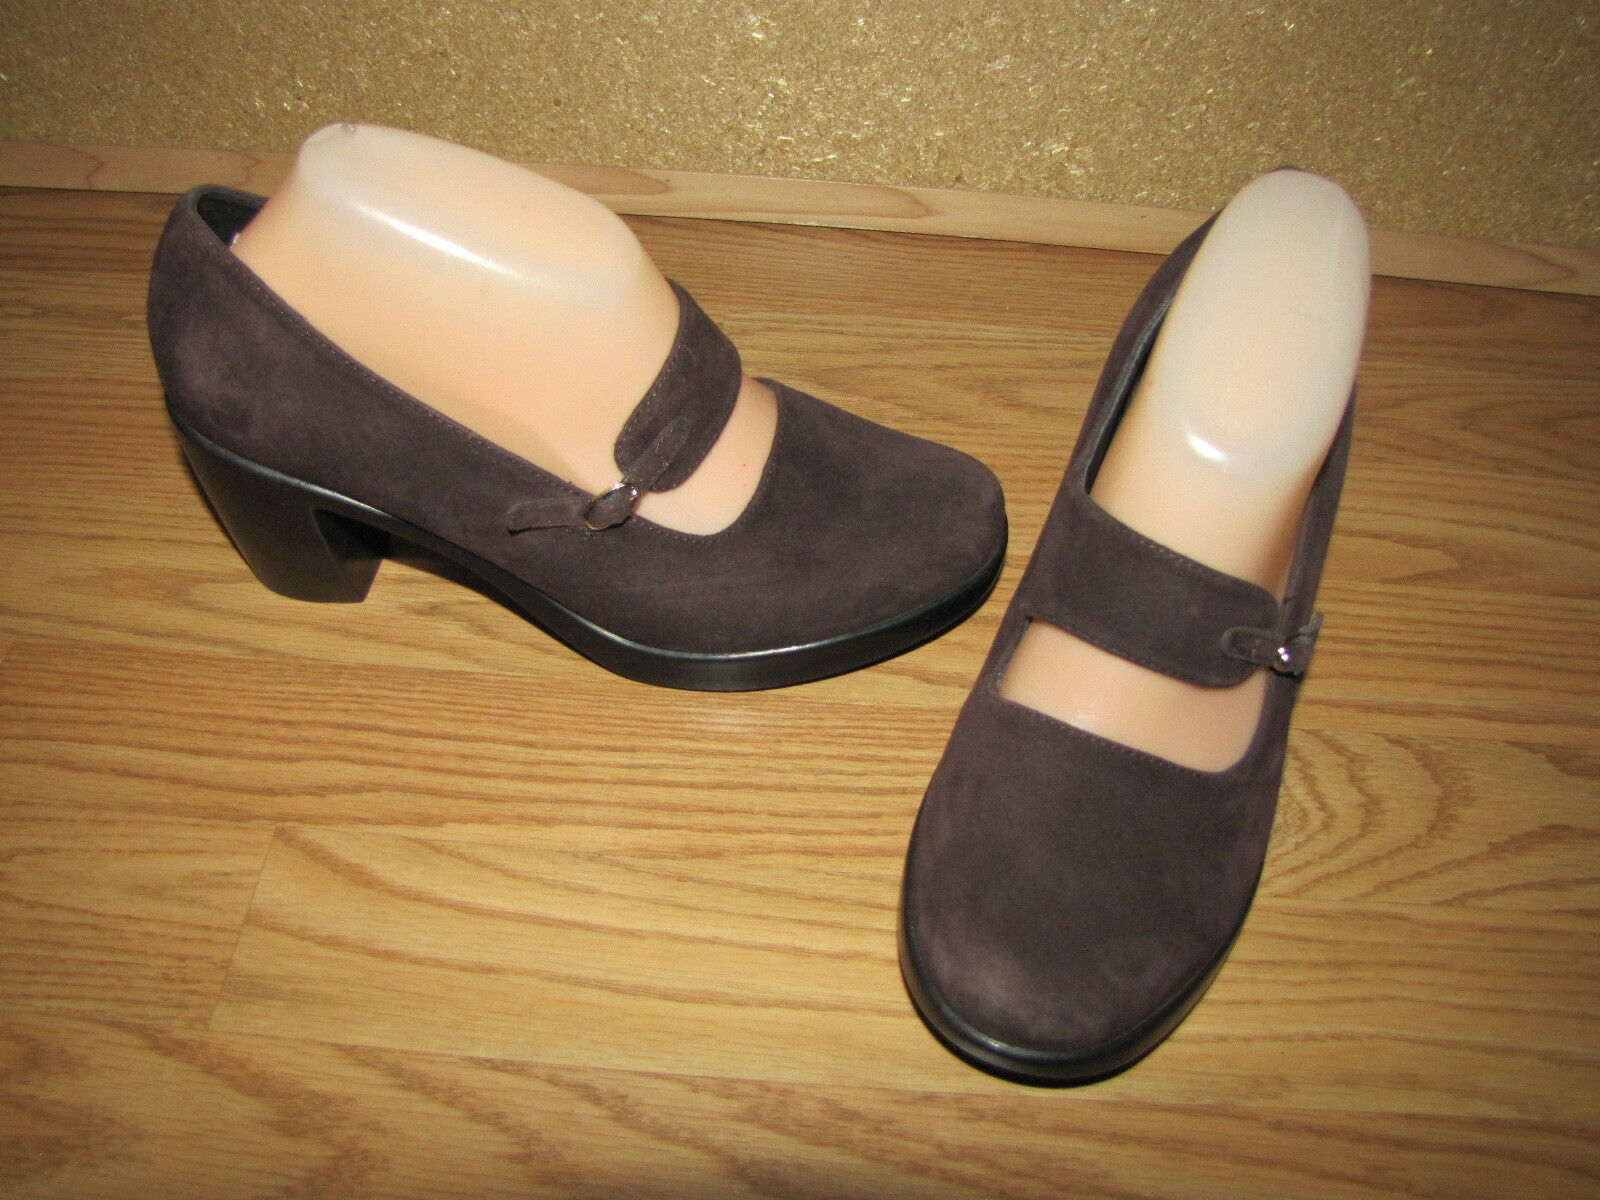 Dansko 'Tara' Brown Suede Mary Jane Pumps - 8.5 European 39 EUC